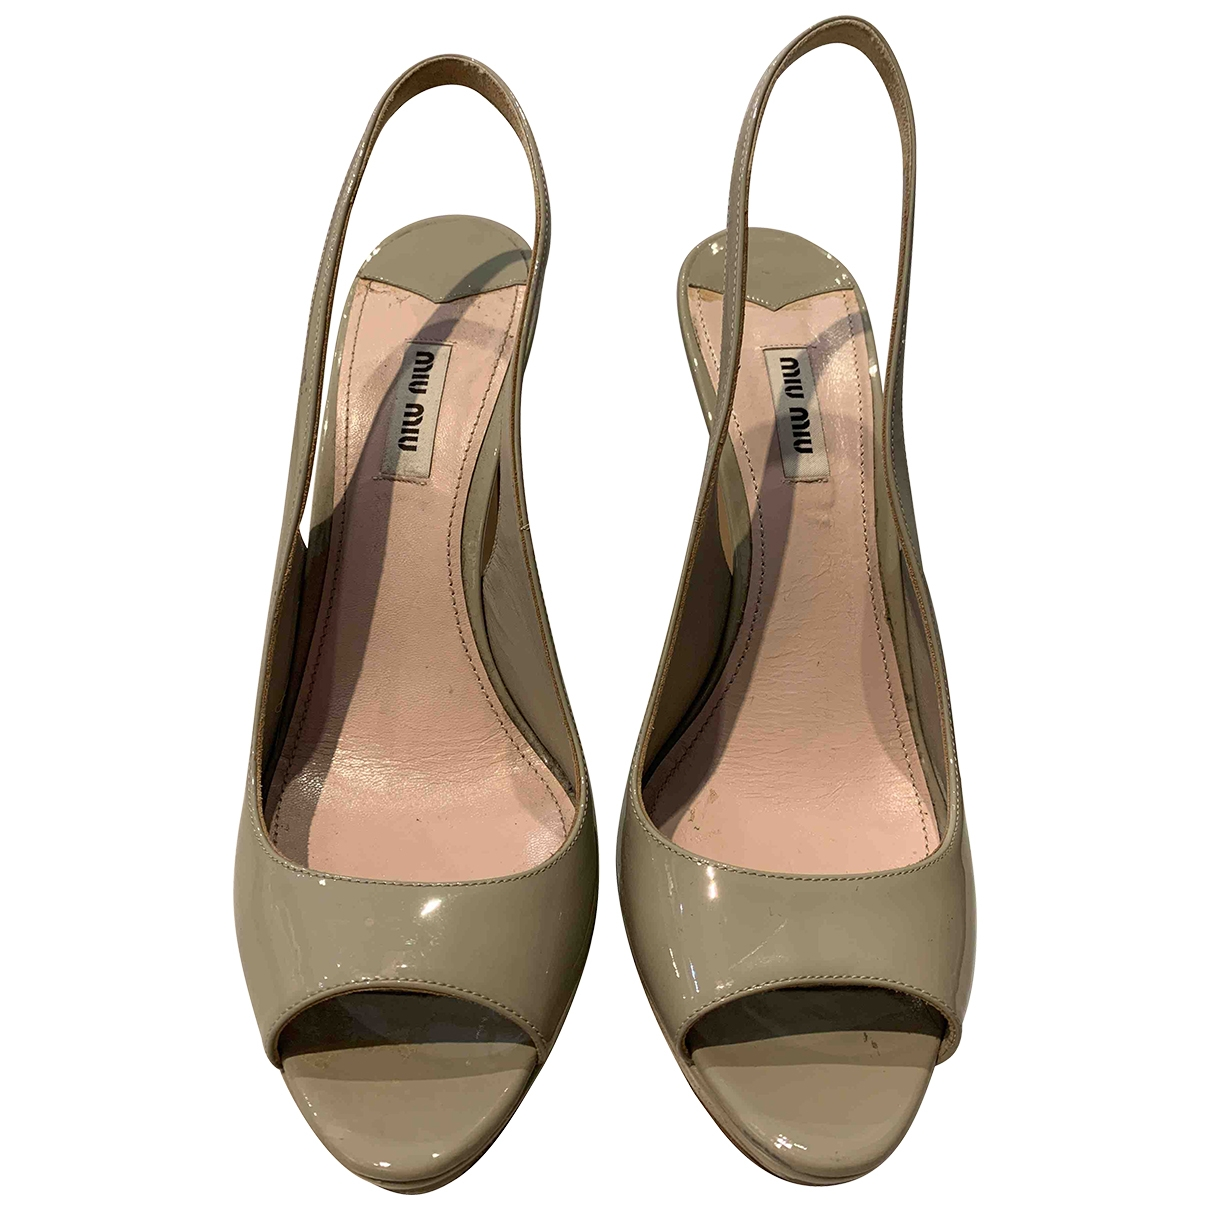 Miu Miu \N Beige Patent leather Sandals for Women 40 EU